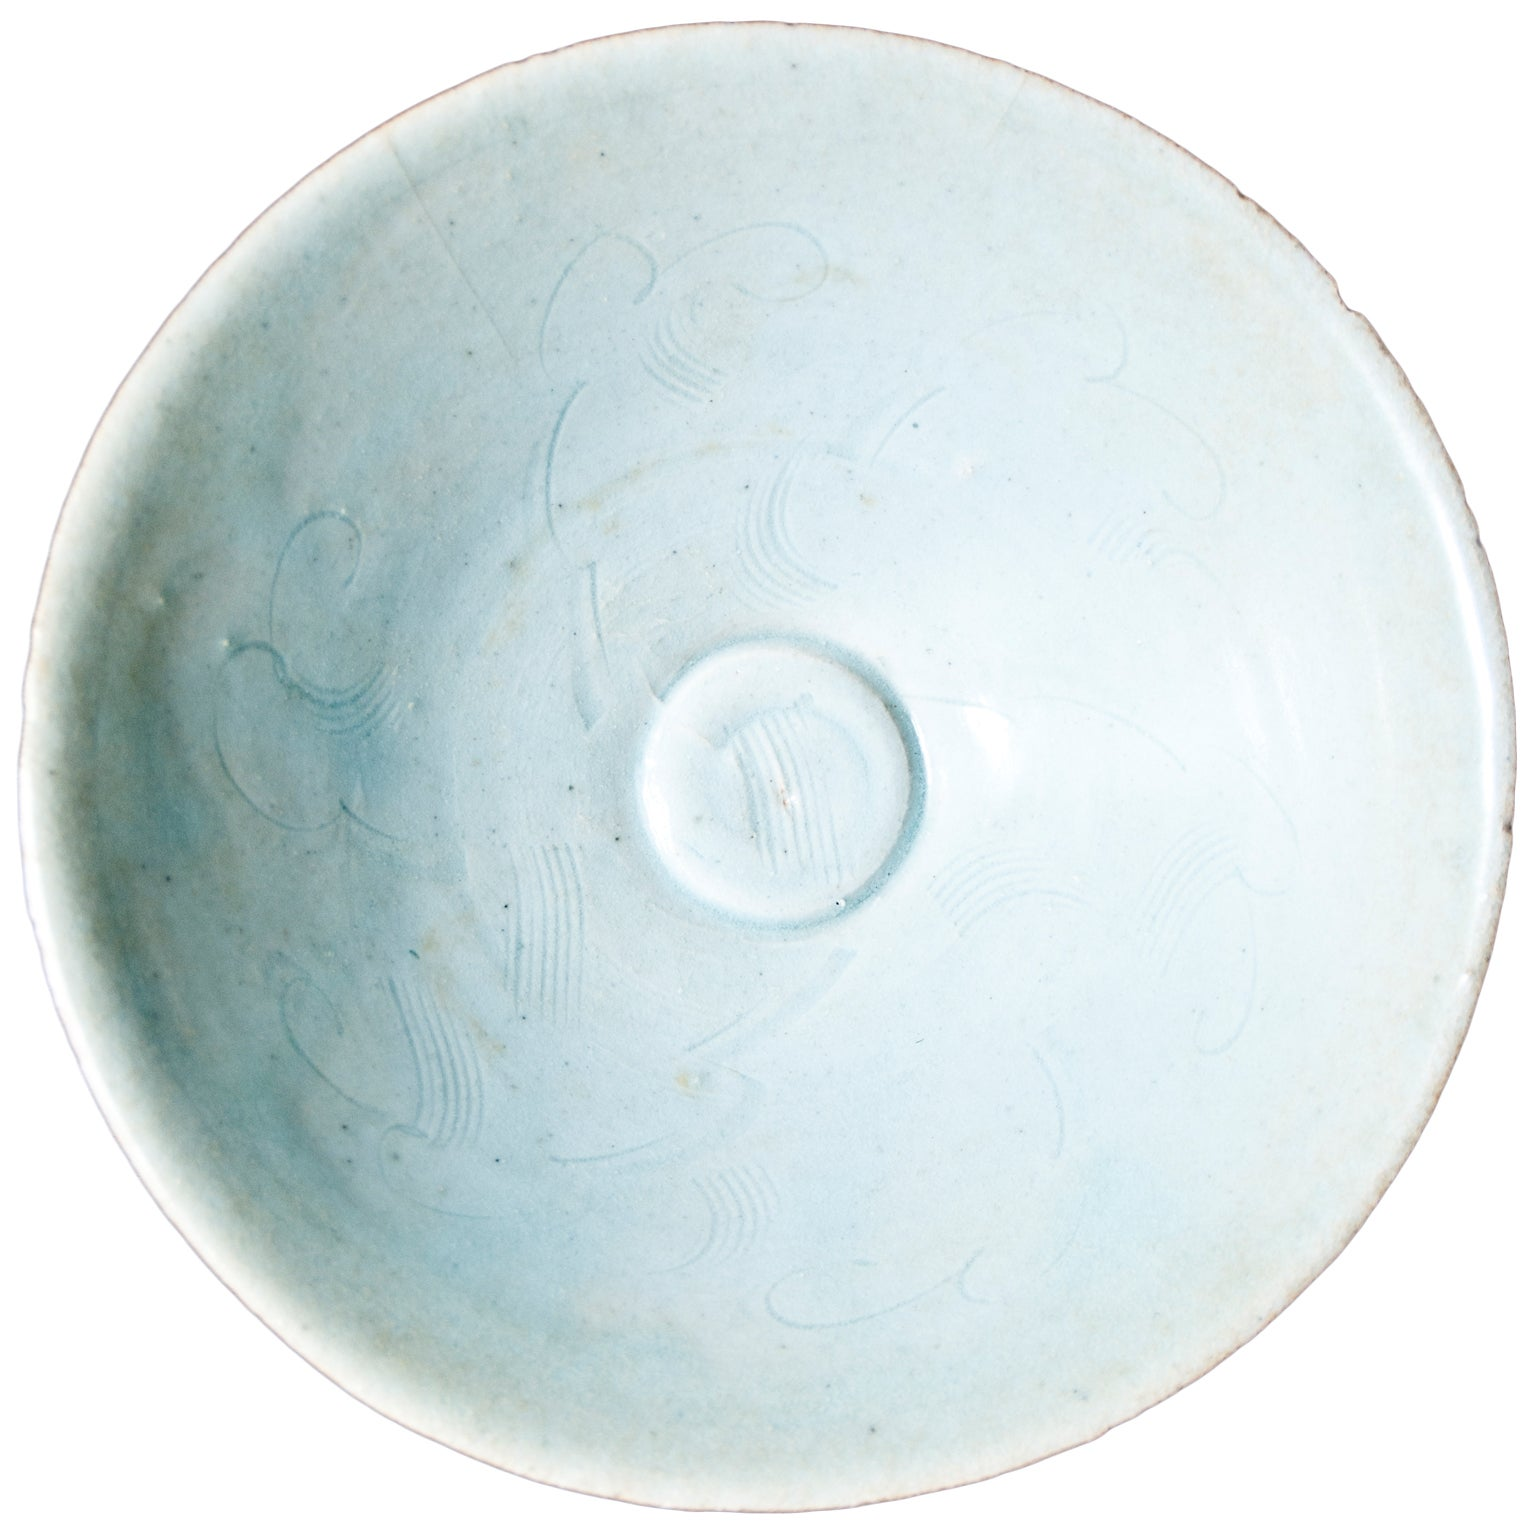 Circular Chinese Porcelain Bowl, Sung Period, 12th-14th Century